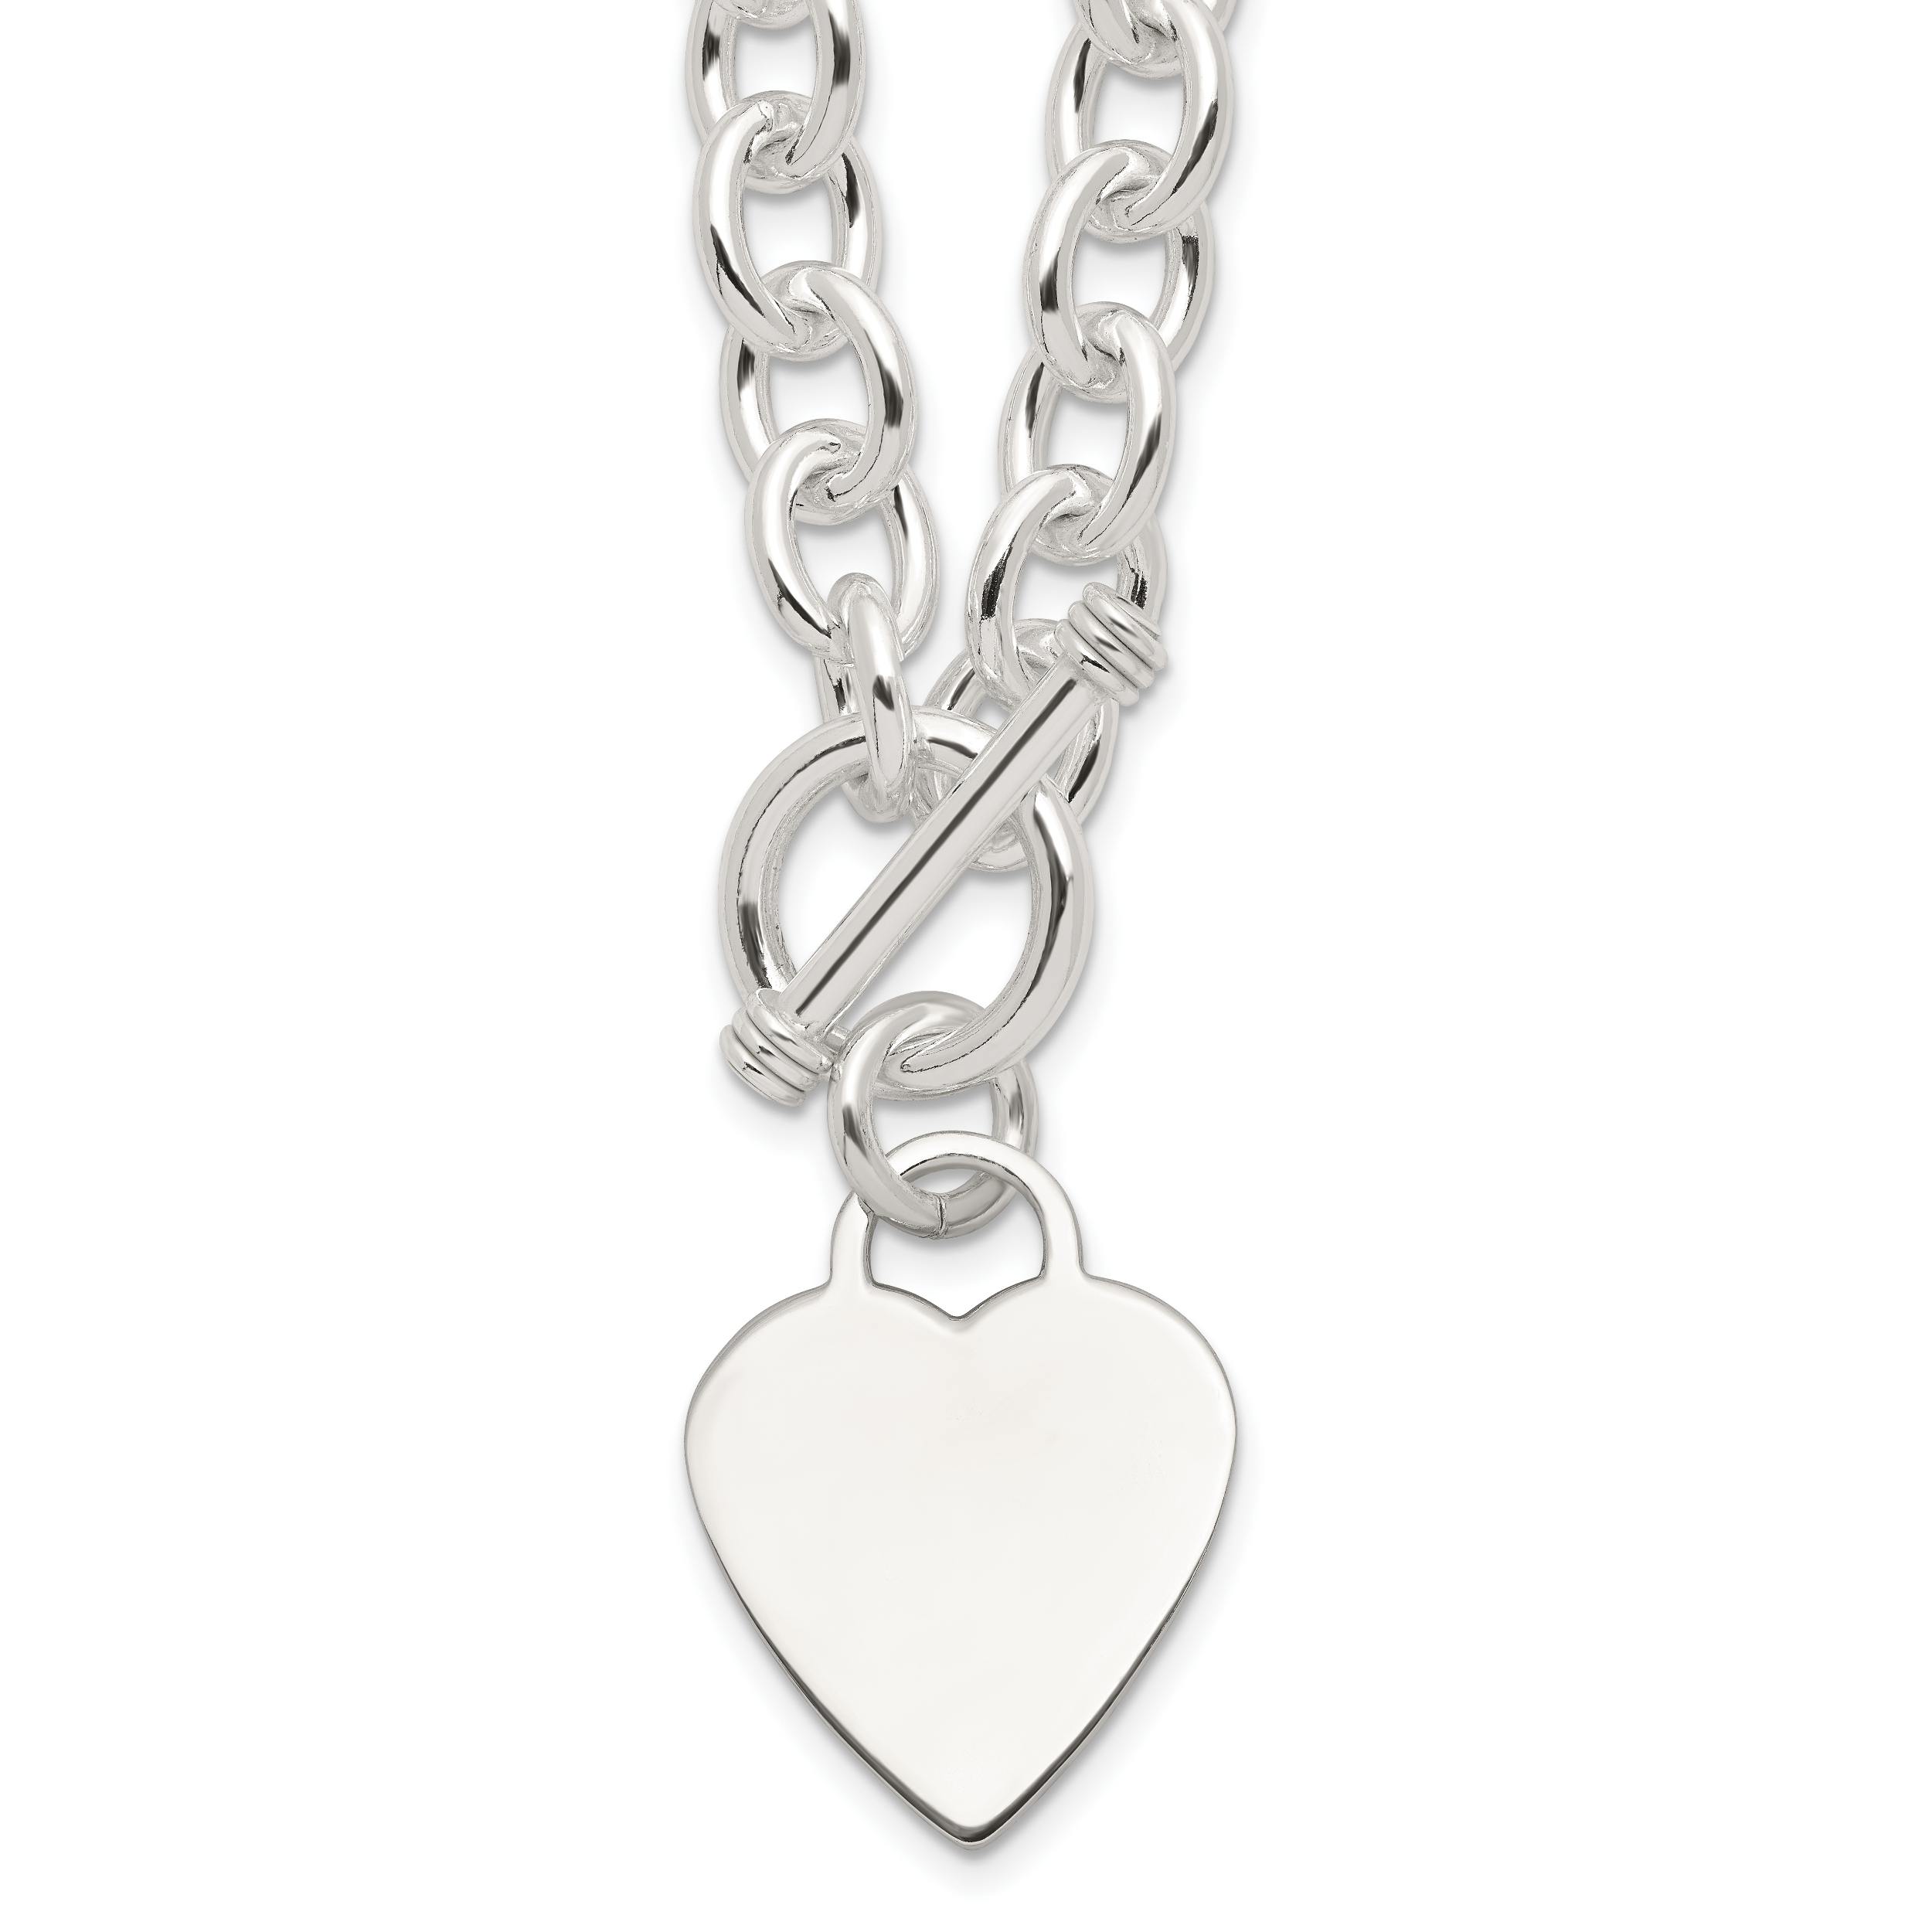 Sterling Silver Heart Fancy Link Toggle Necklace | Weight: 54.83 grams, Length: 18mm, Width: mm